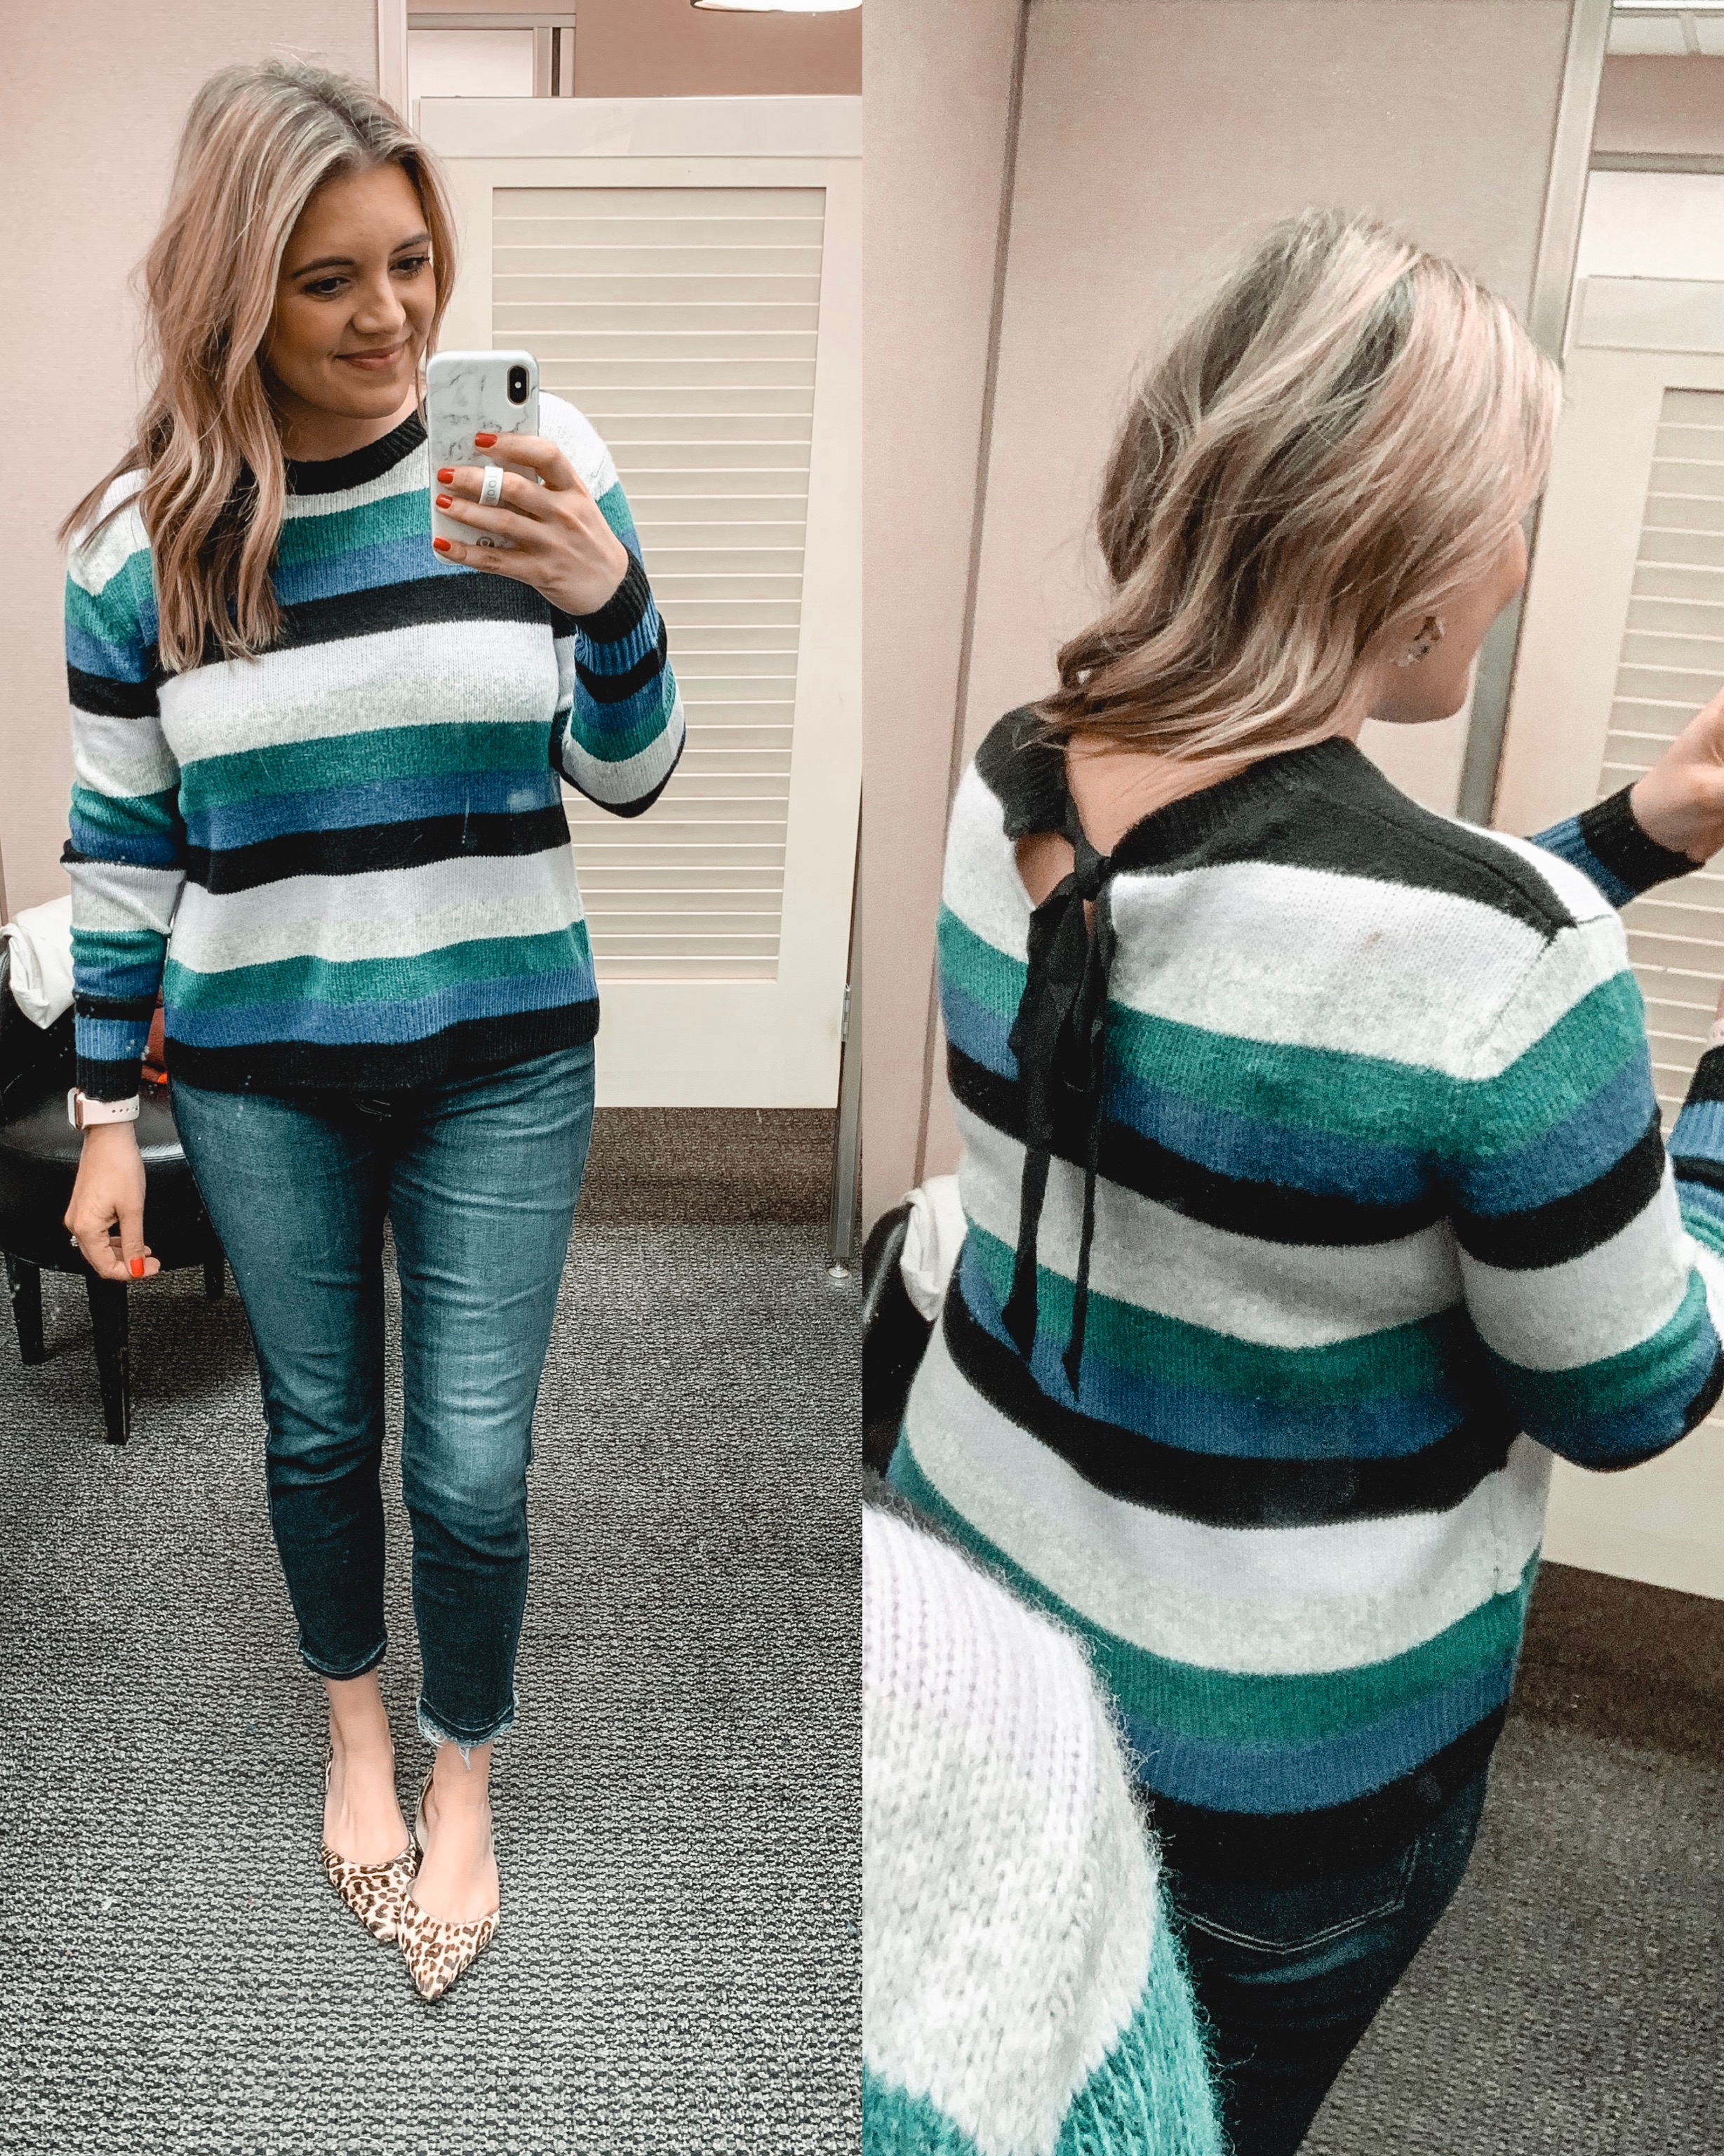 Affordable style blogger Lauren Dix shares a Nordstrom try-on with winter outfits! bylaurenm.com